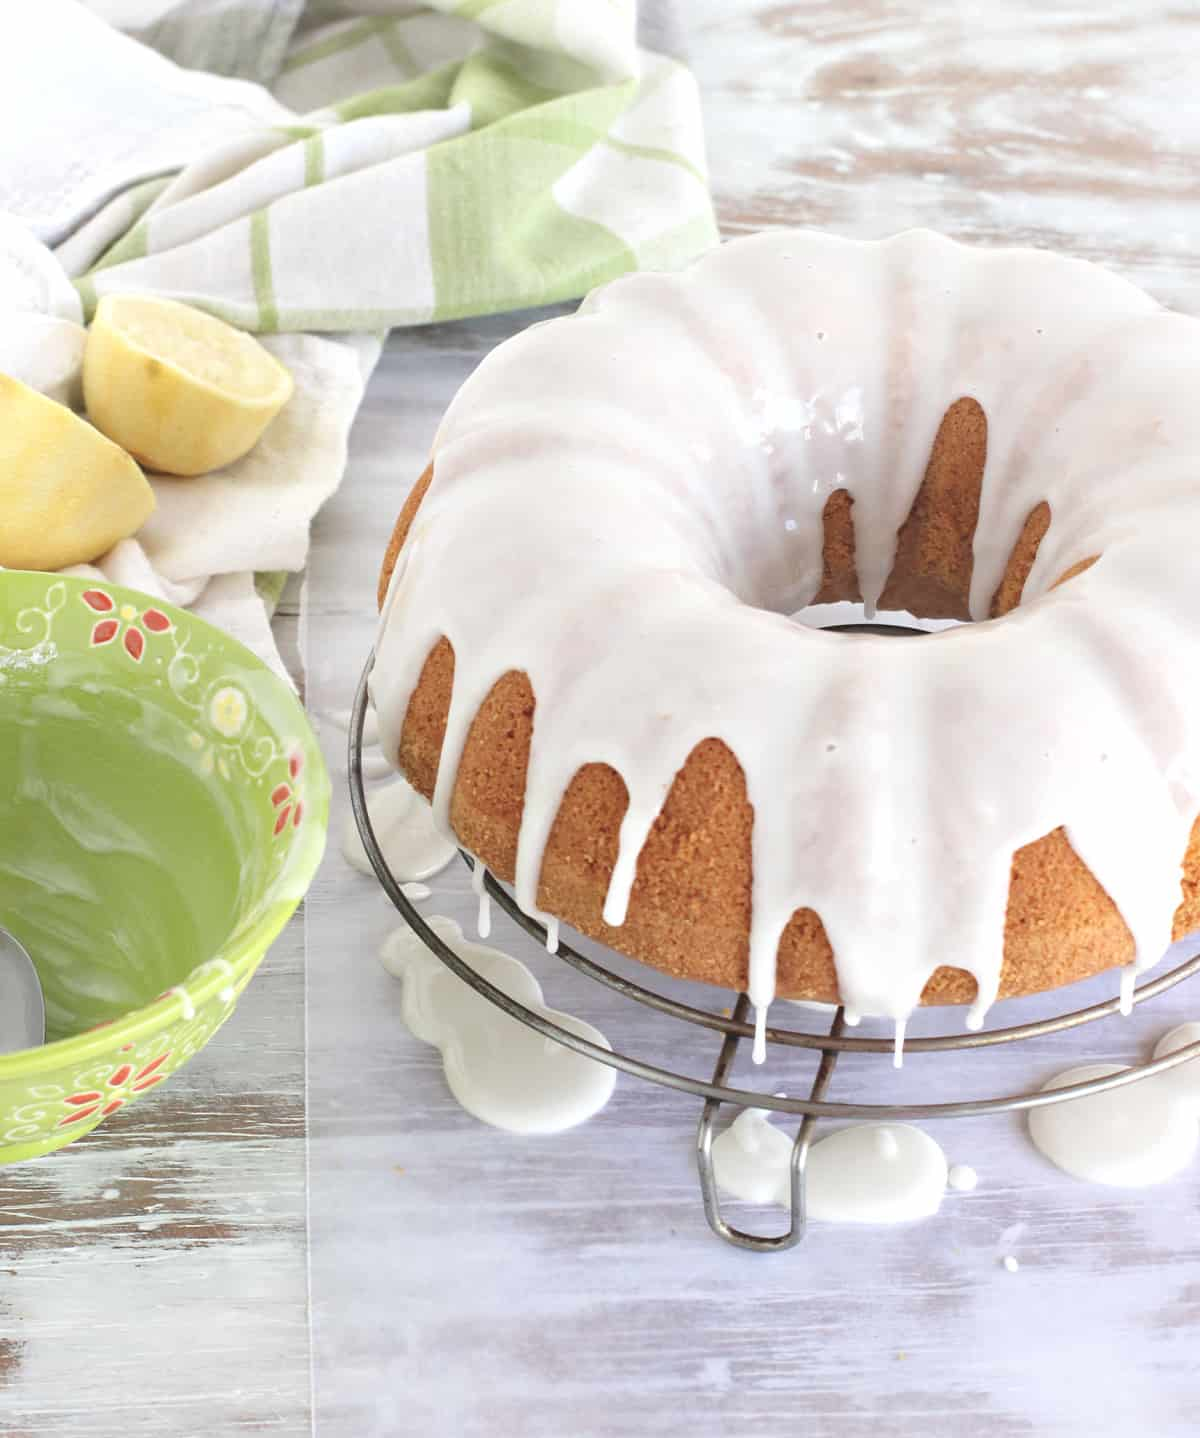 Just glazed lemon olive oil bundt cake